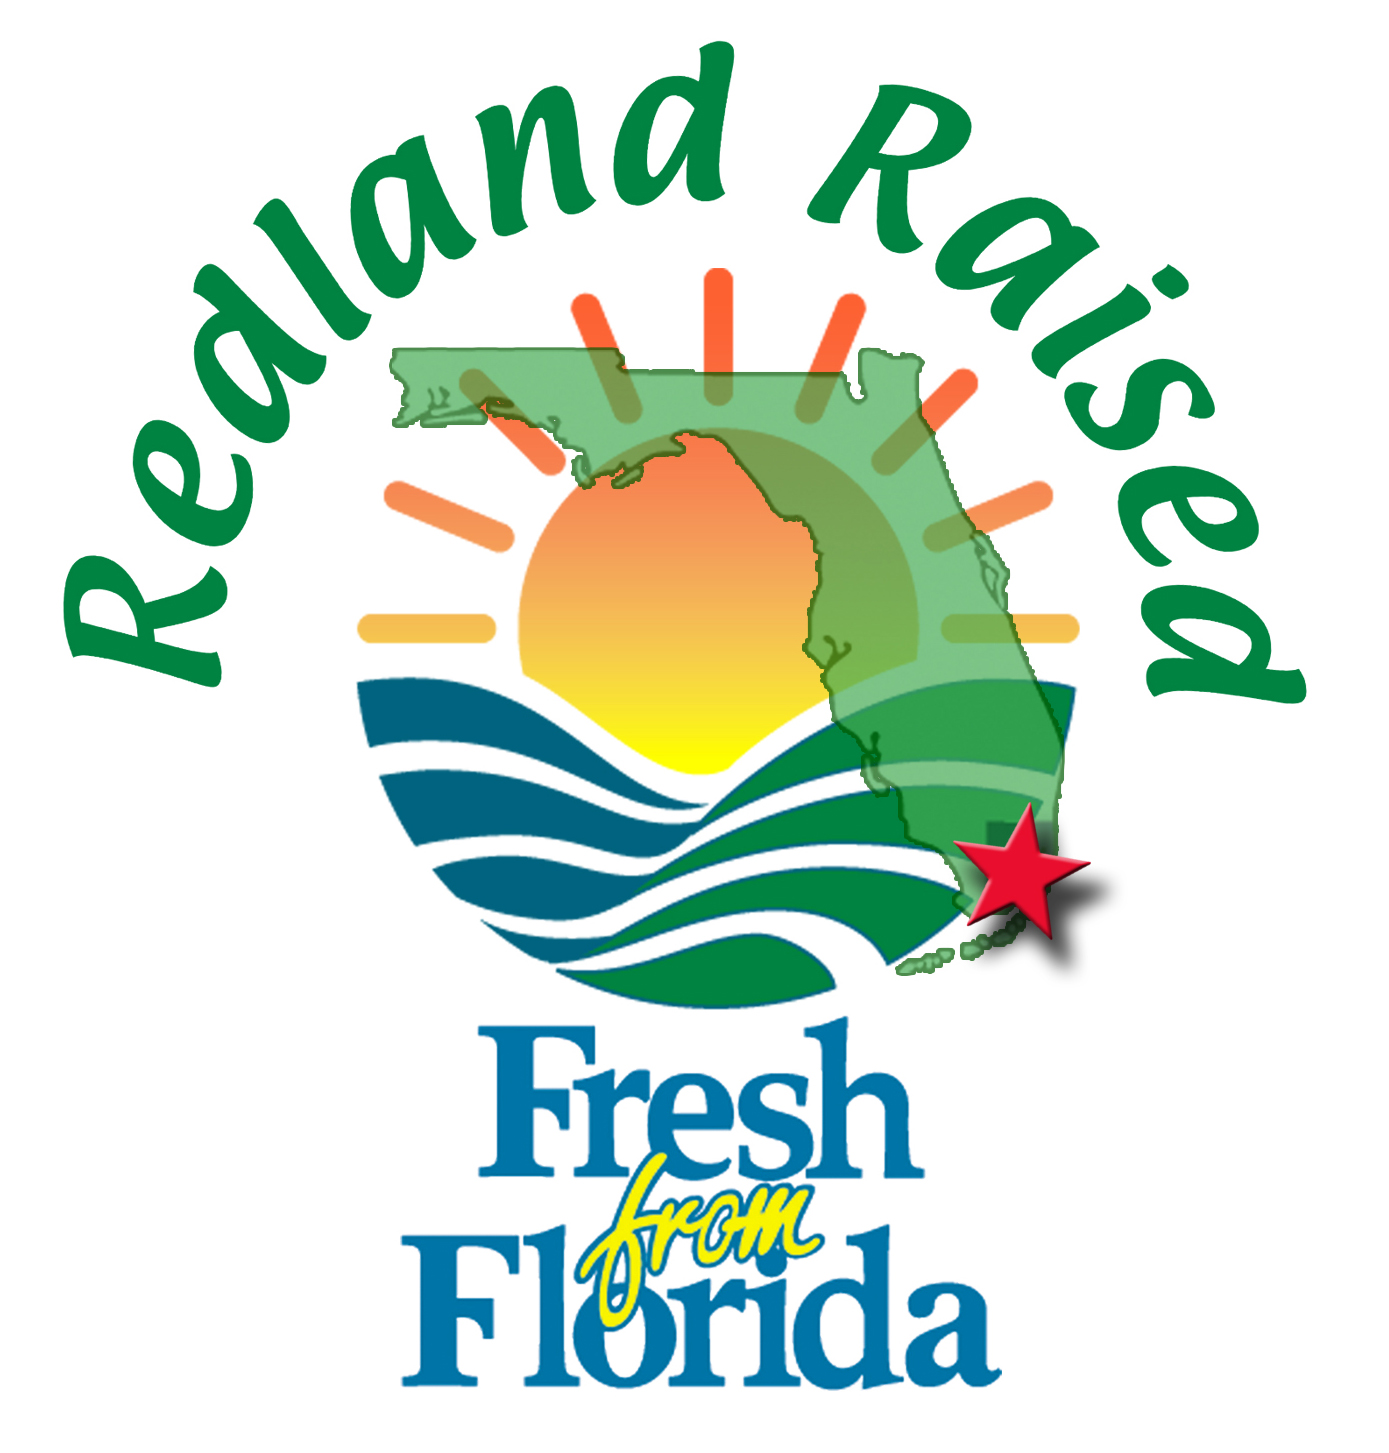 Redland Raised Fresh from Florida